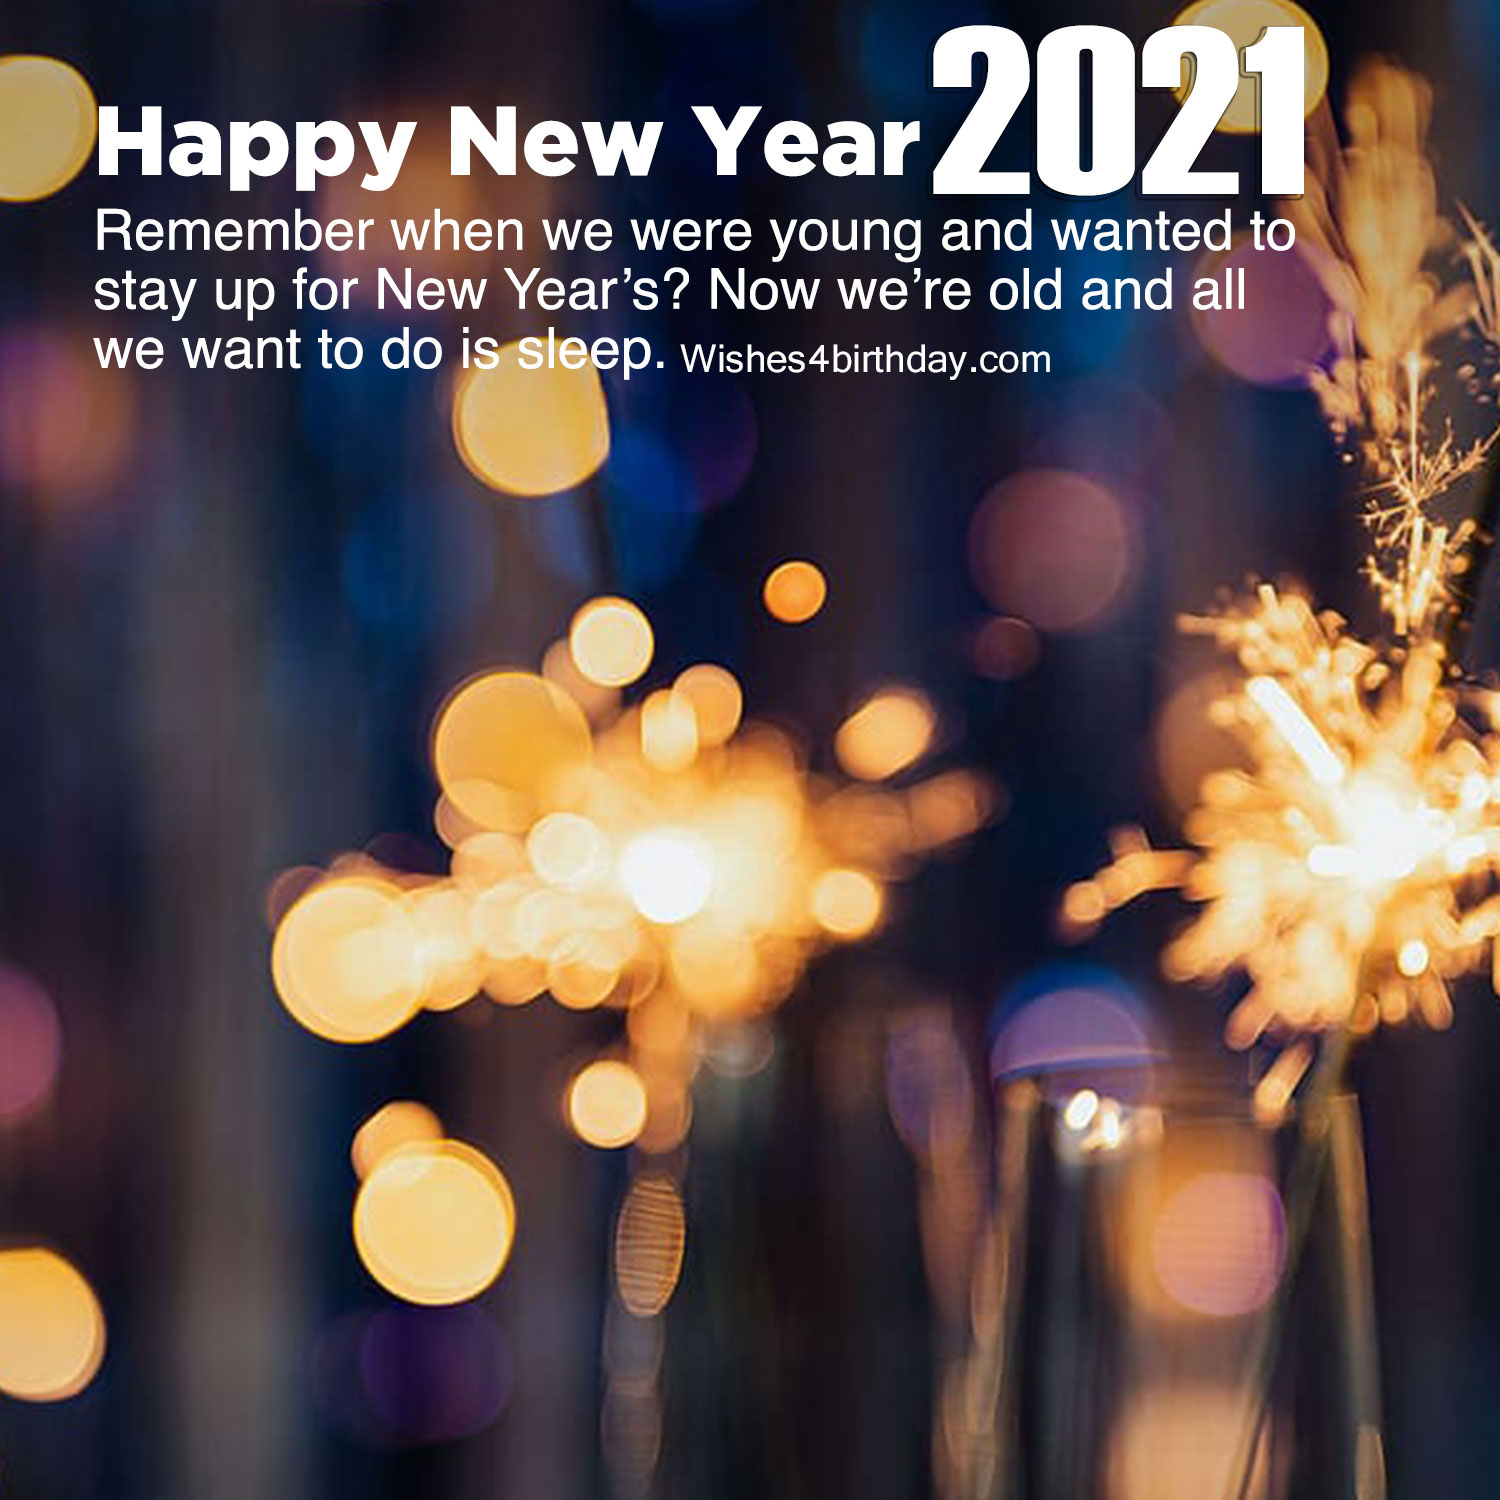 Spread and share Happy new year 2021 photos with countdown - Happy Birthday Wishes, Memes, SMS ...